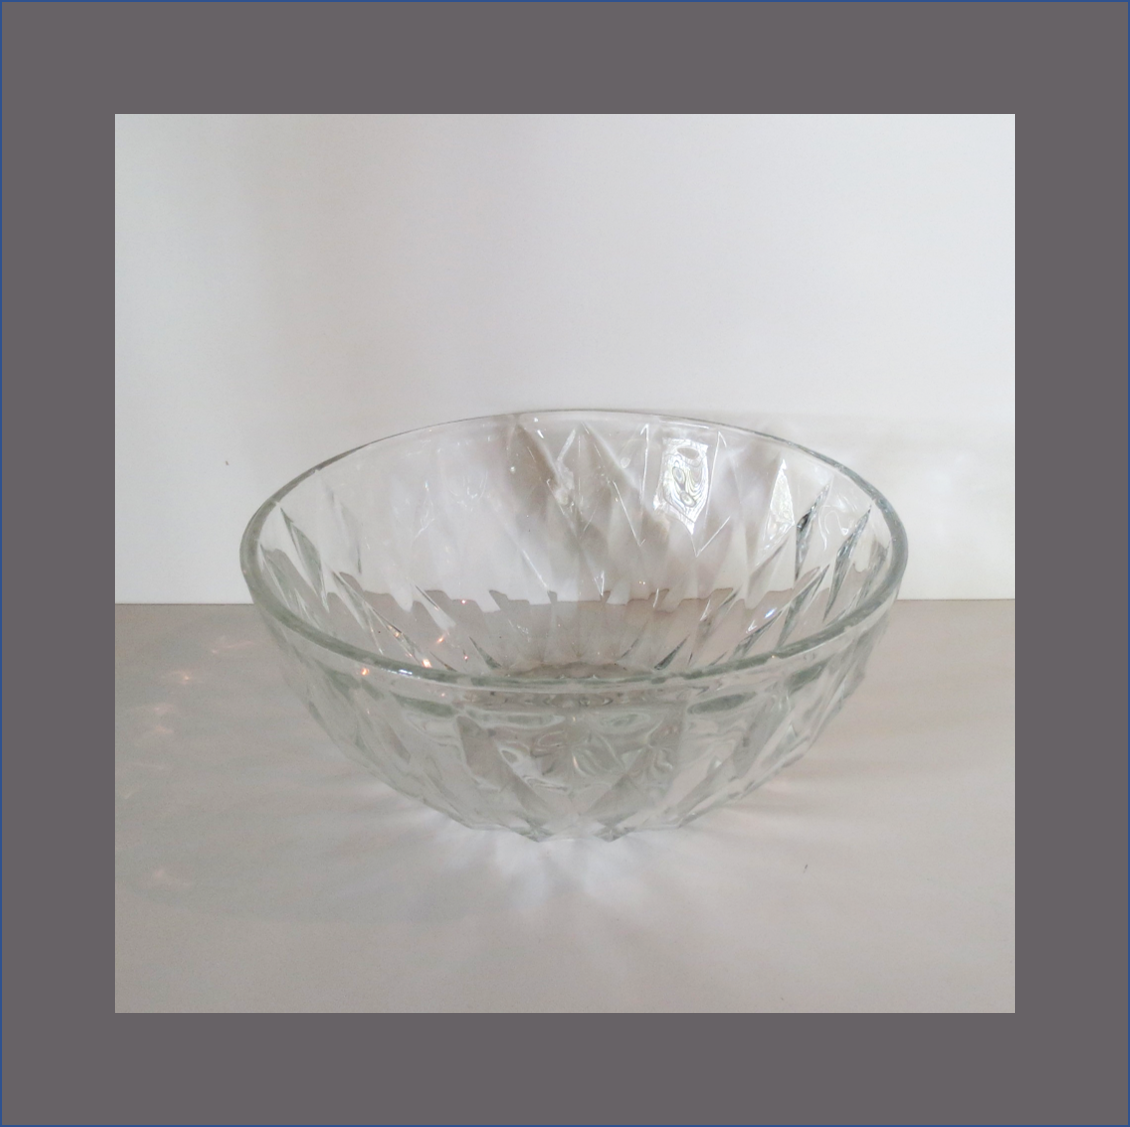 crystal-glass-bowl-clear